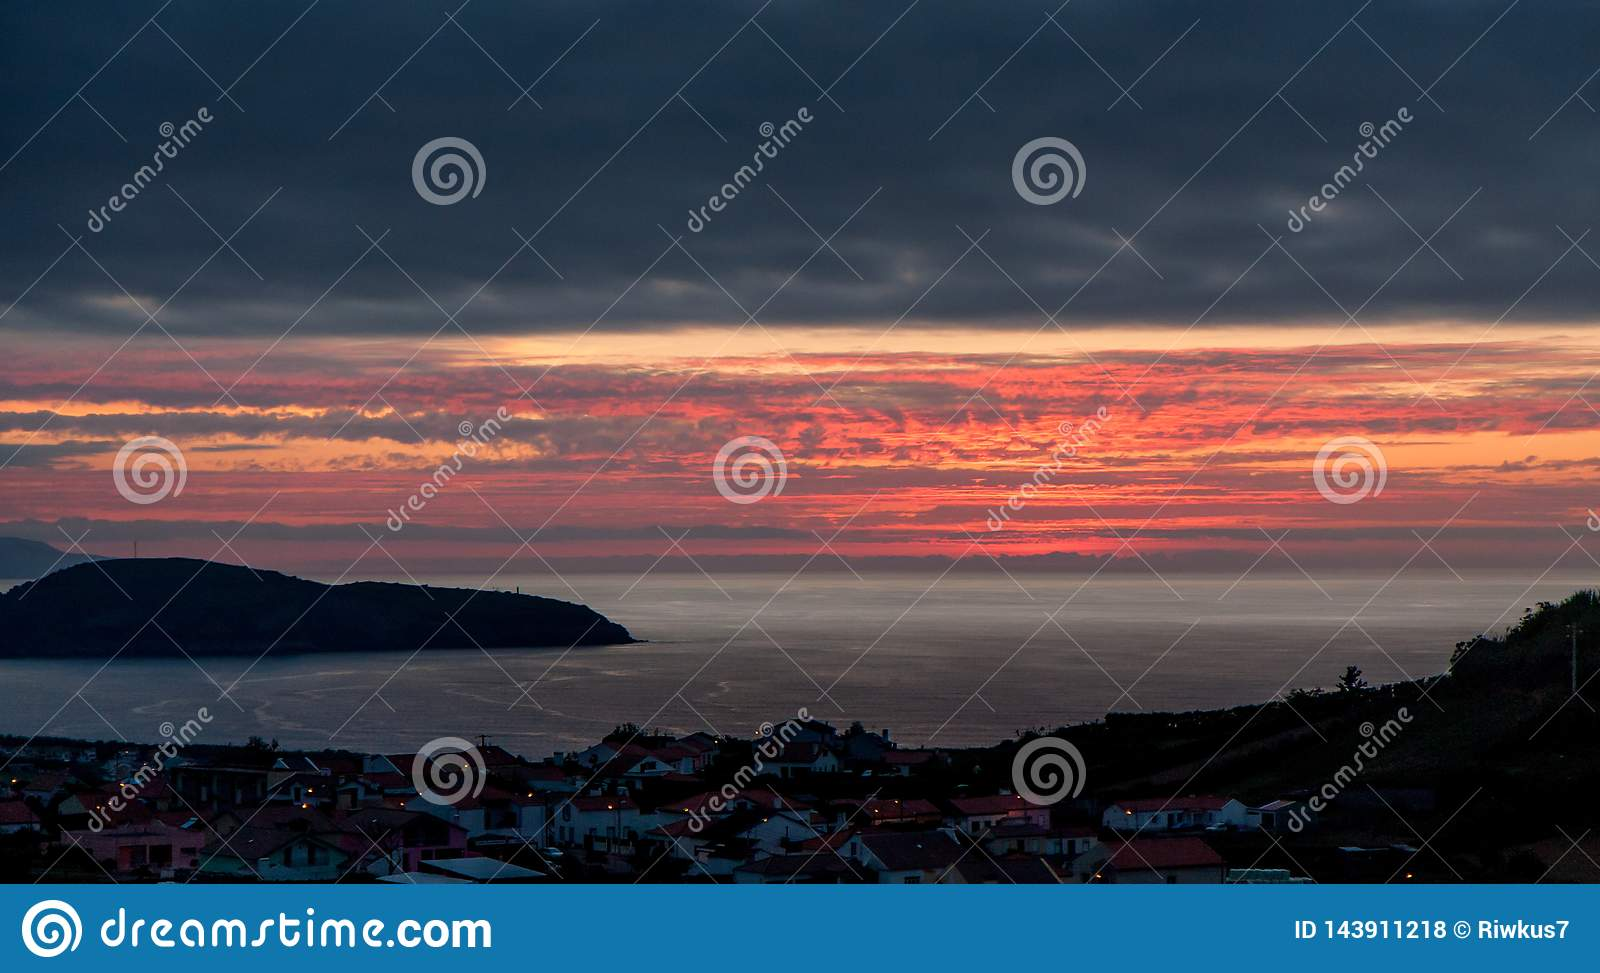 Beautiful sunset over the city by the sea